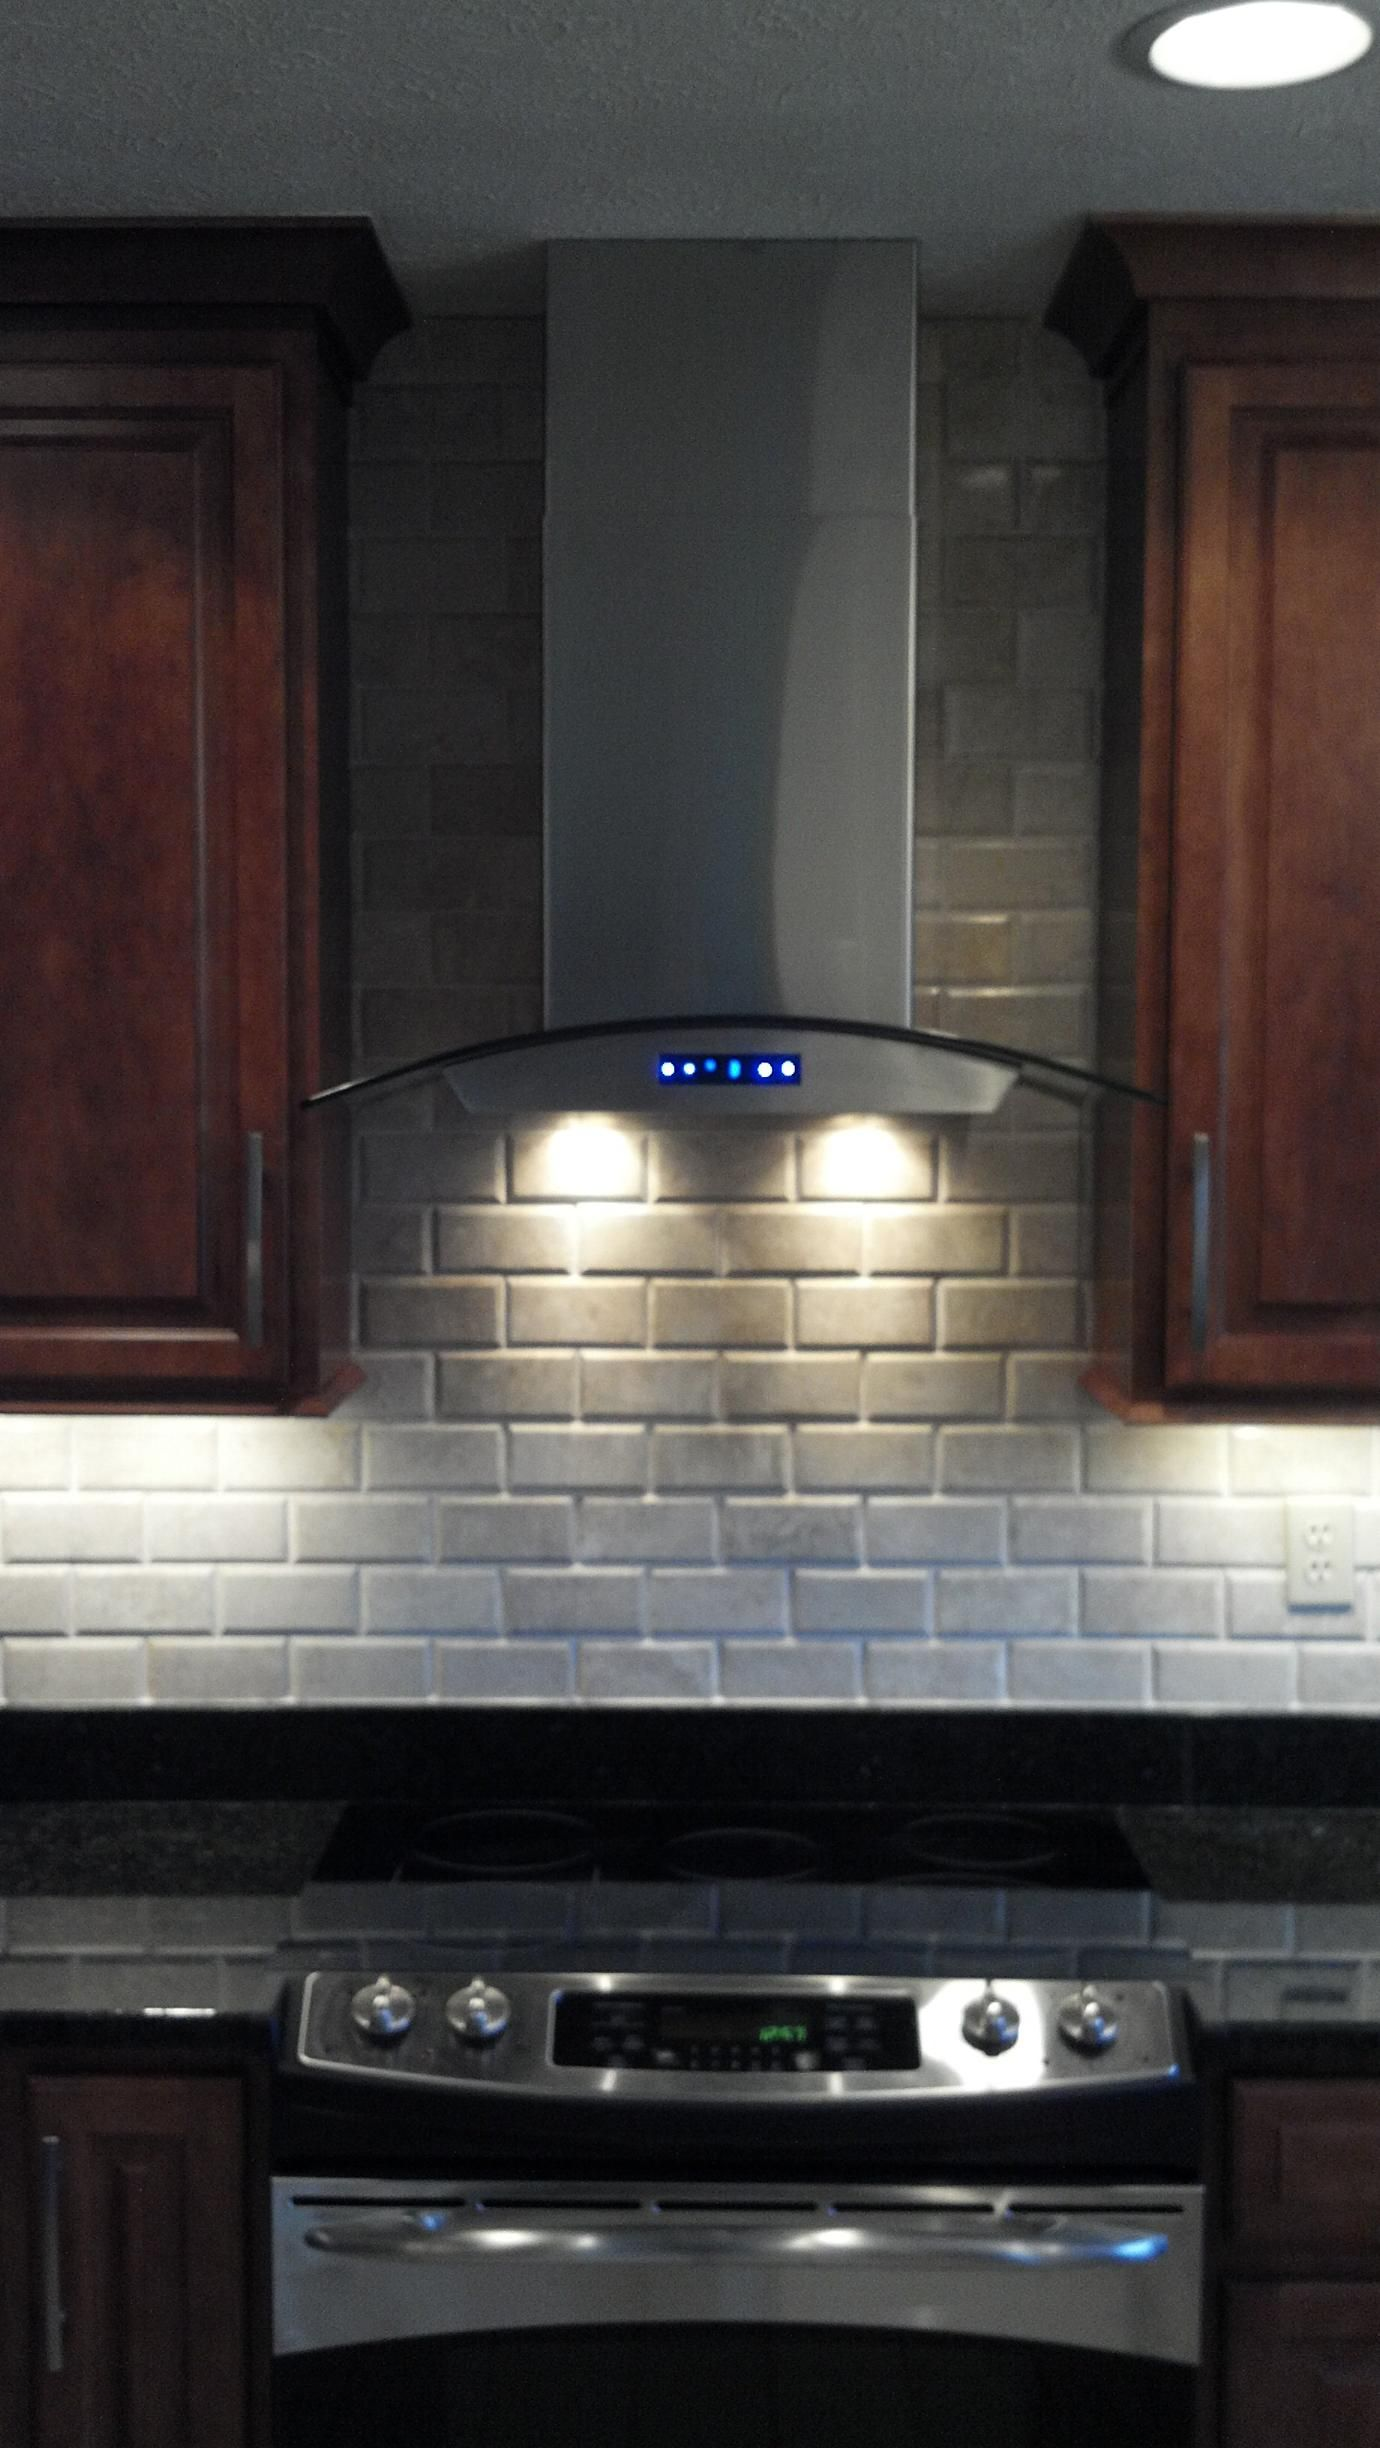 Spacing Between Kitchen Cabinets Range Hood With Cabinets On Each Side, But Add Spacing In